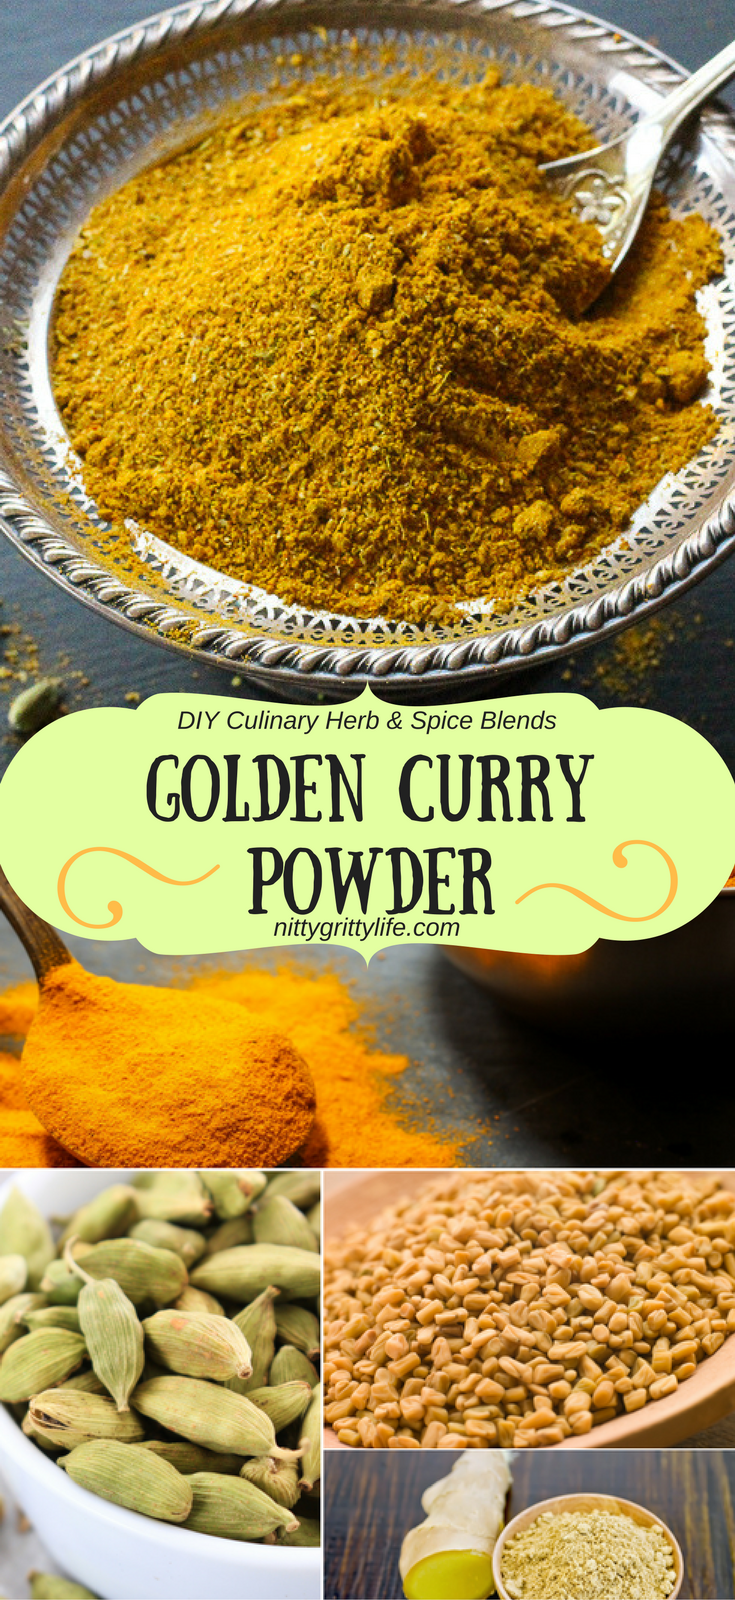 The Secret To This Delicious Golden Curry Powder Blend Is In The Spices Grinding Whole Spices Creates A Diy Curry That Curry Spices Curry Powder Golden Curry